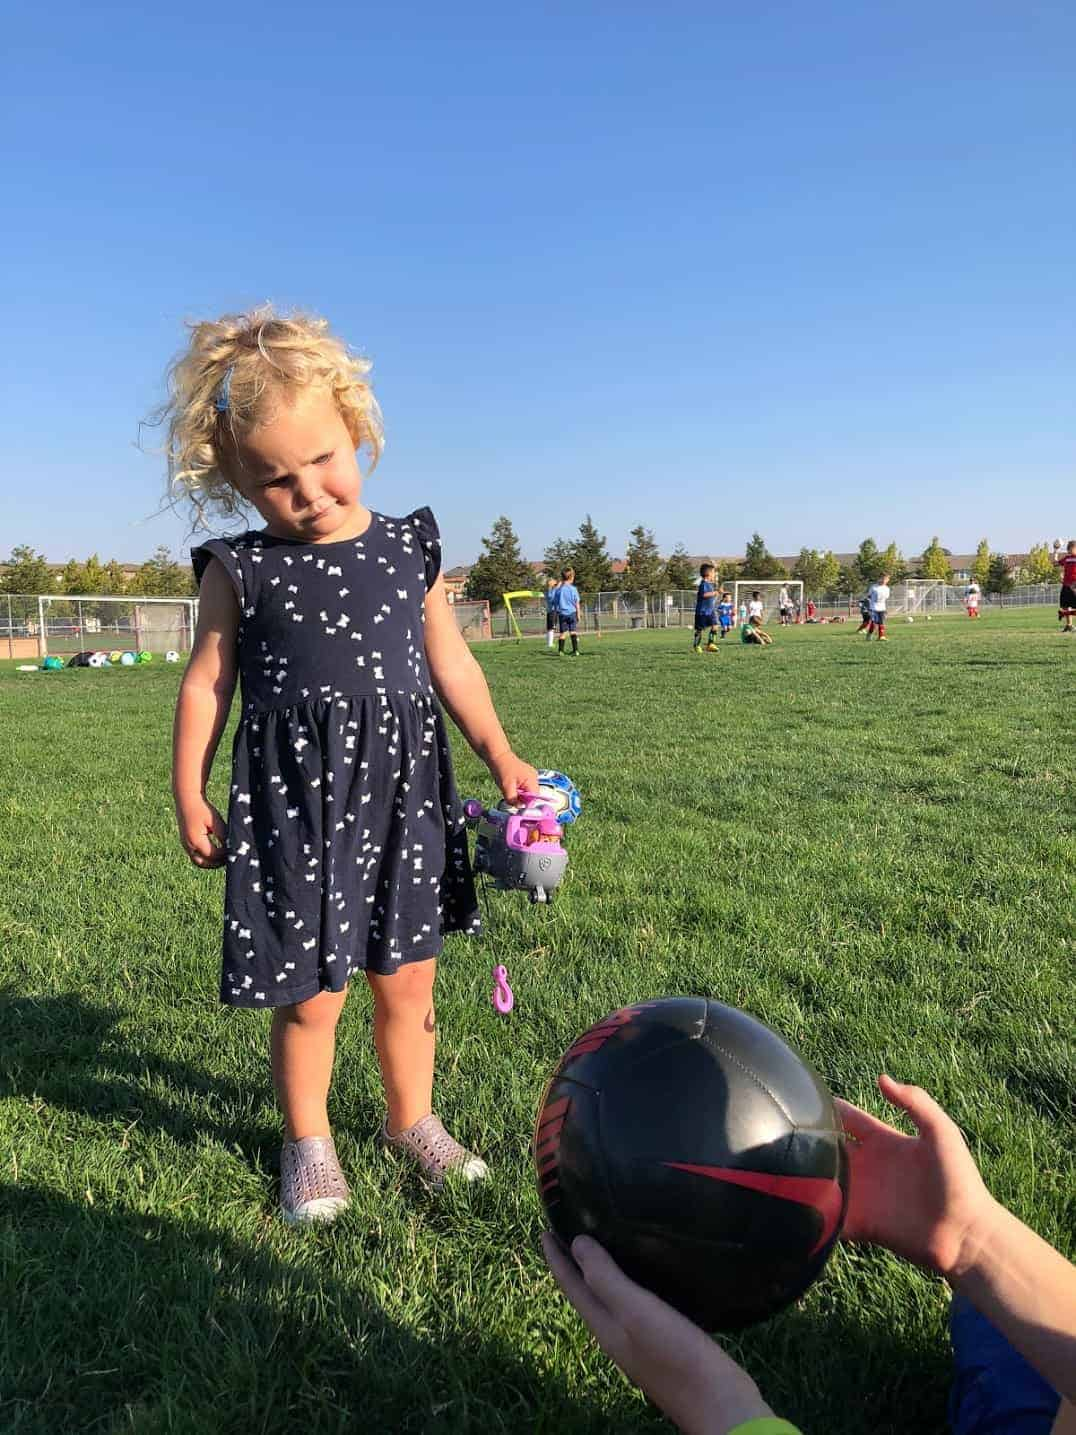 toddler girl holding a Paw Patrol toy watching soccer practice on a grass field